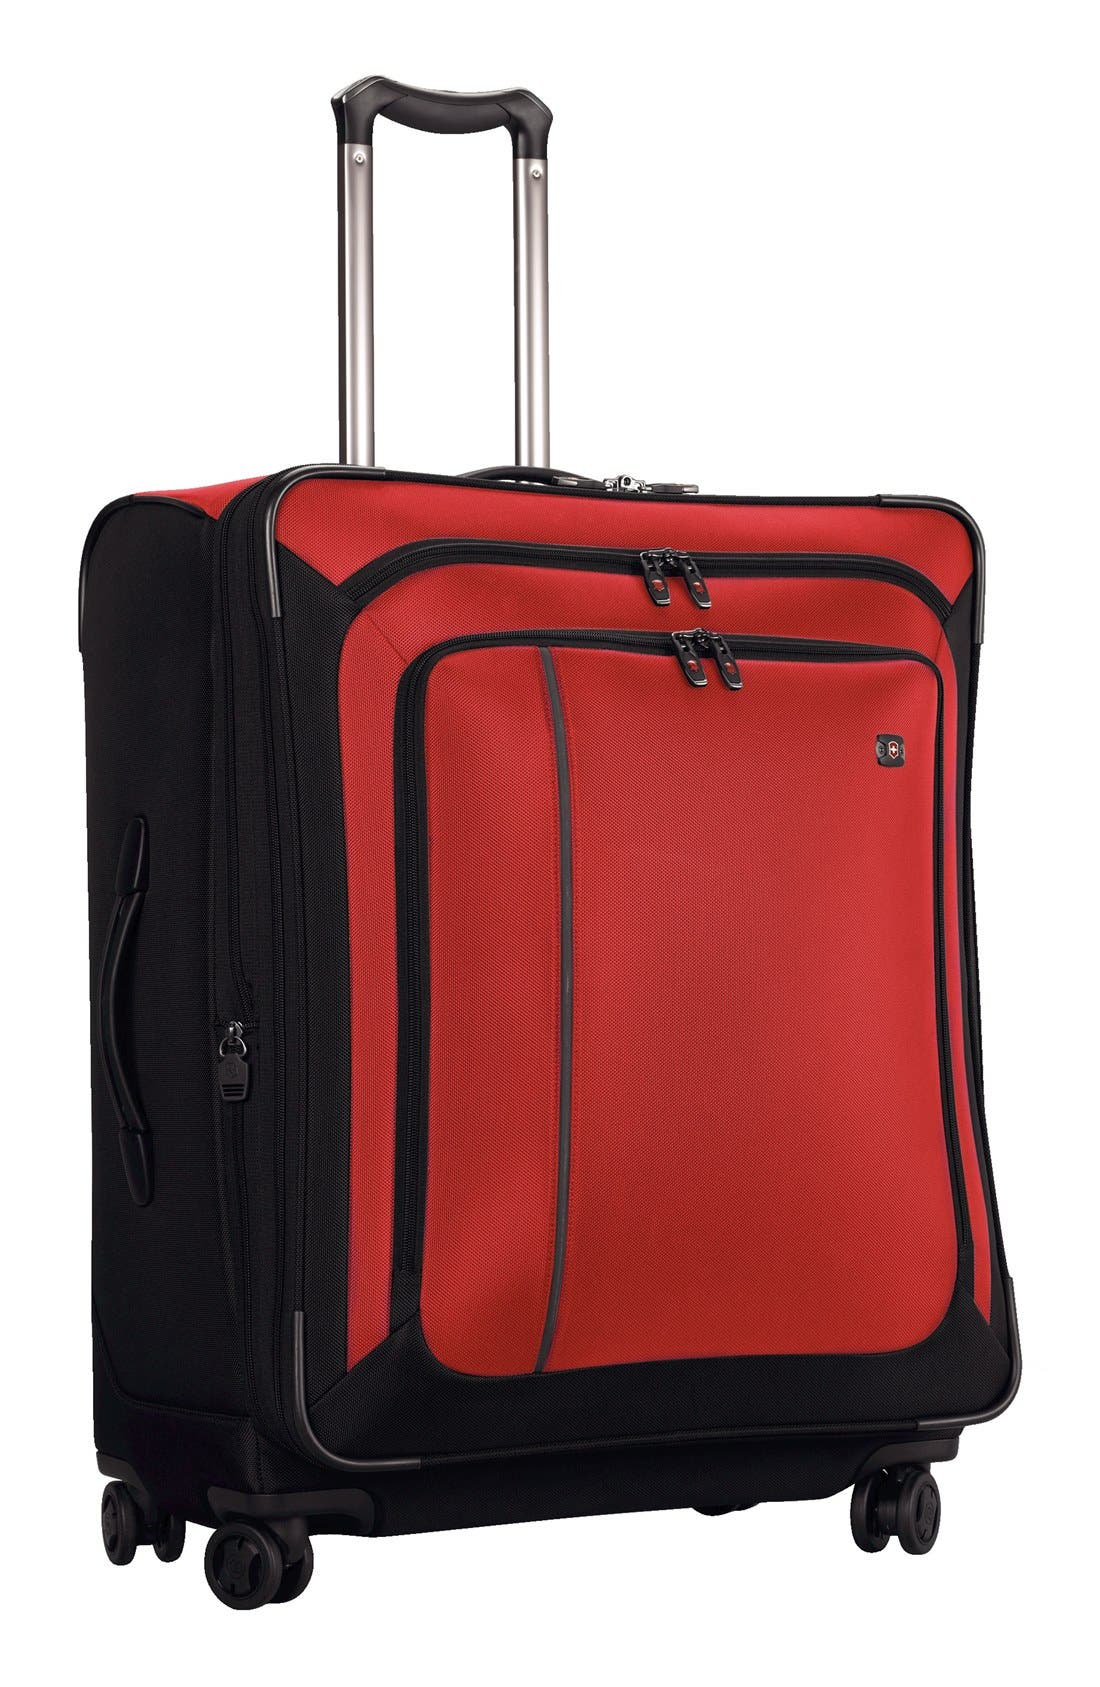 Alternate Image 1 Selected - Victorinox Swiss Army® 'Werks - Traveler' Rolling Suitcase (27 Inch)